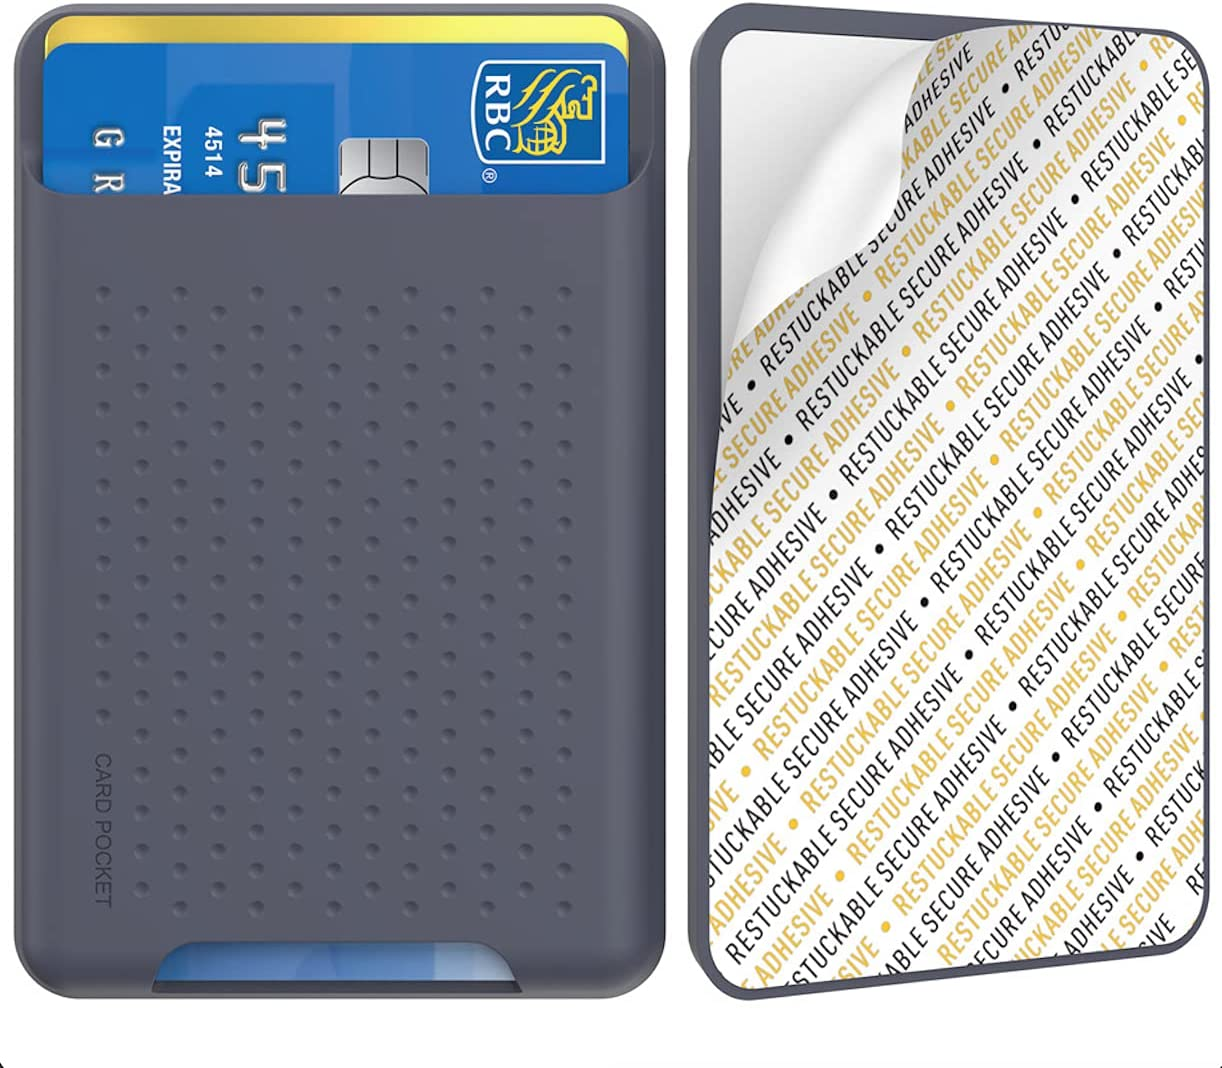 Phone Credit Card Holder Stick On, Slim Phone Wallet Strong Adhesive Silicone Card Pouch Sleeve Compatible with iPhone/Android/Samsung Galaxy